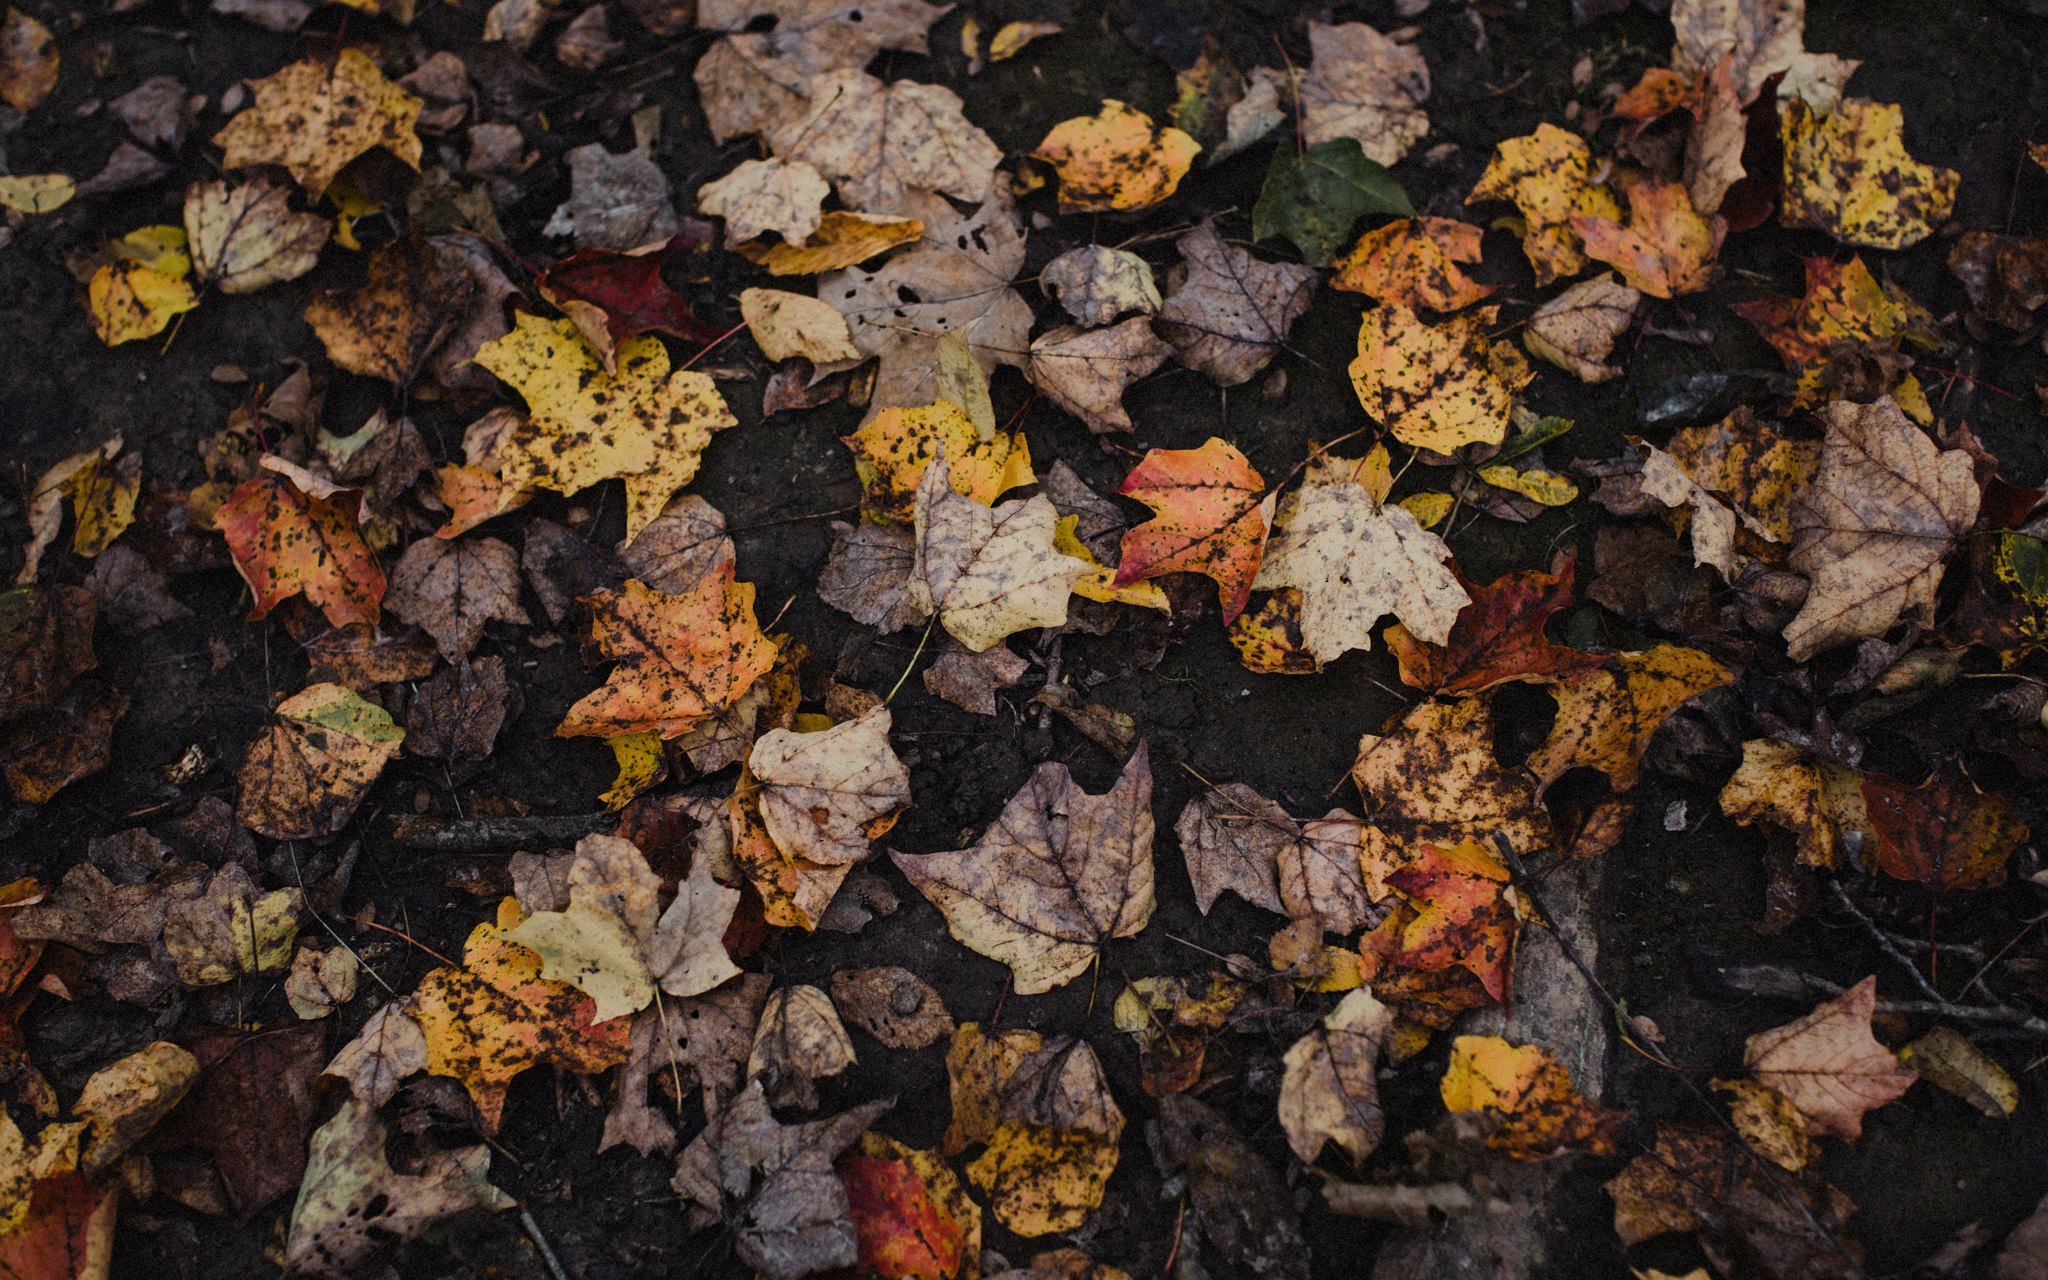 muddy leaves on the ground